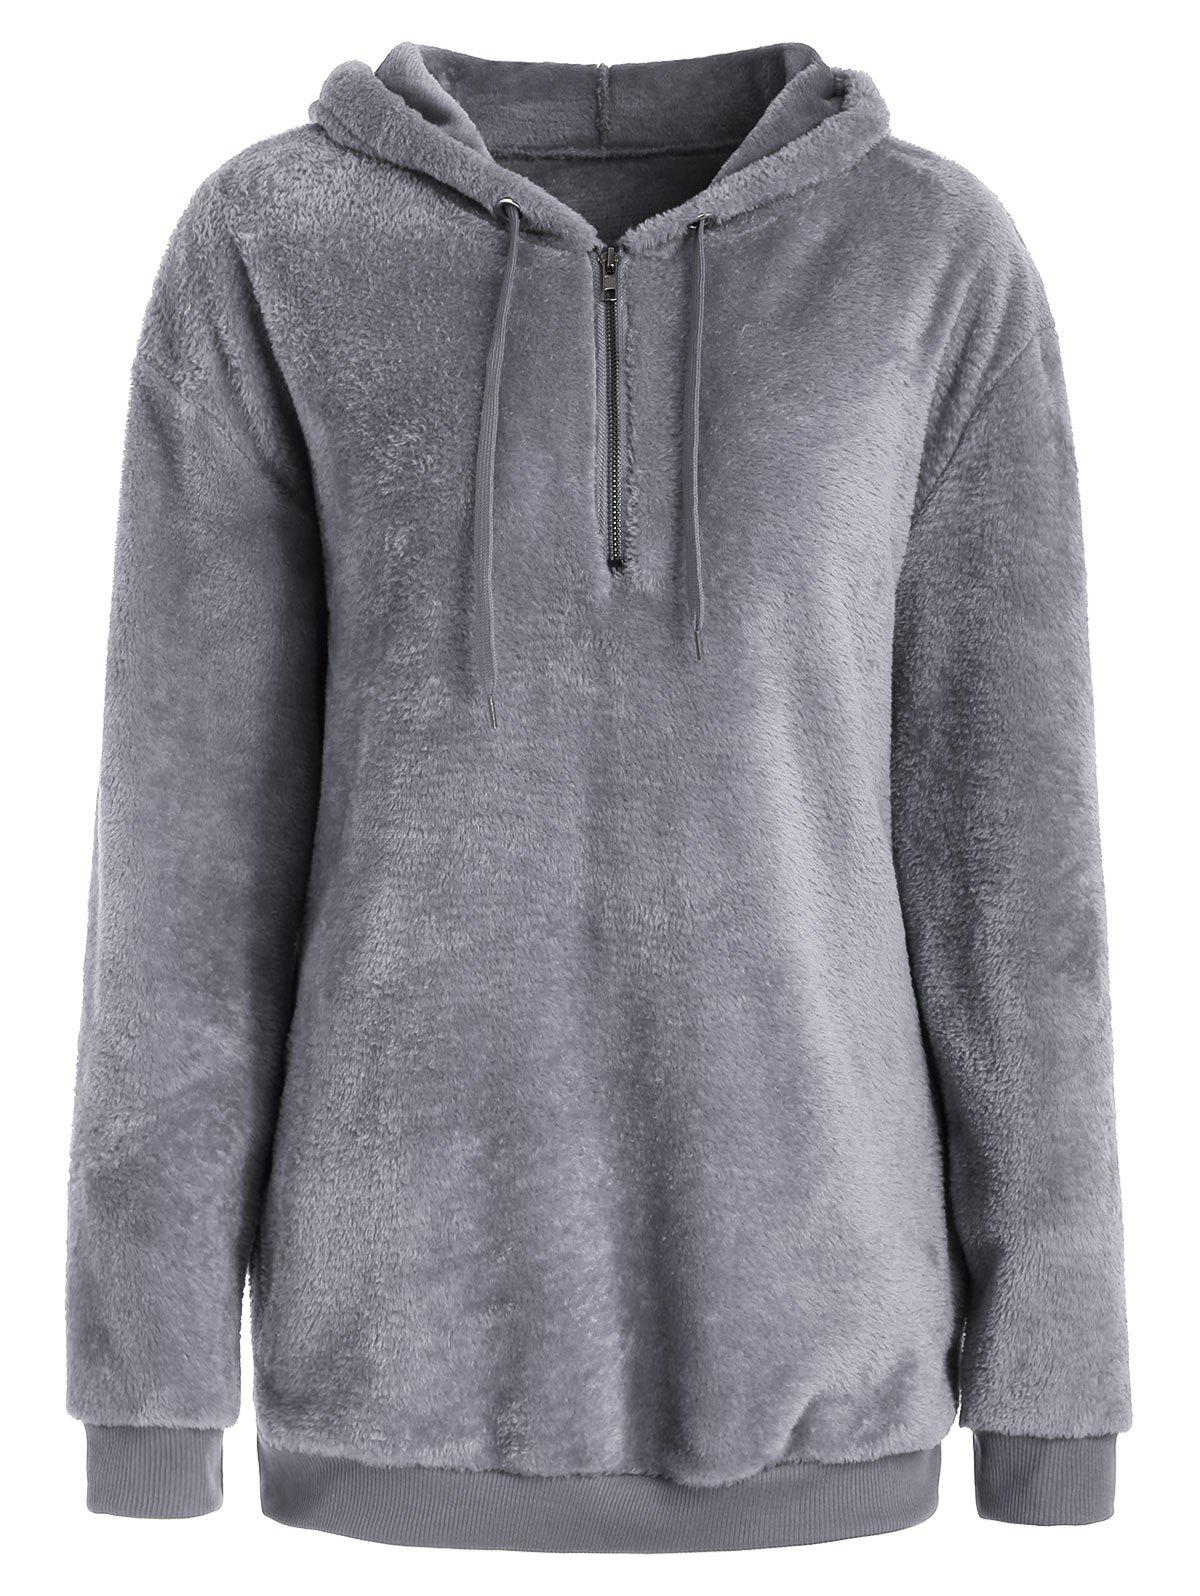 Cheap Half Zipper Fluffy Hoodie with Pockets